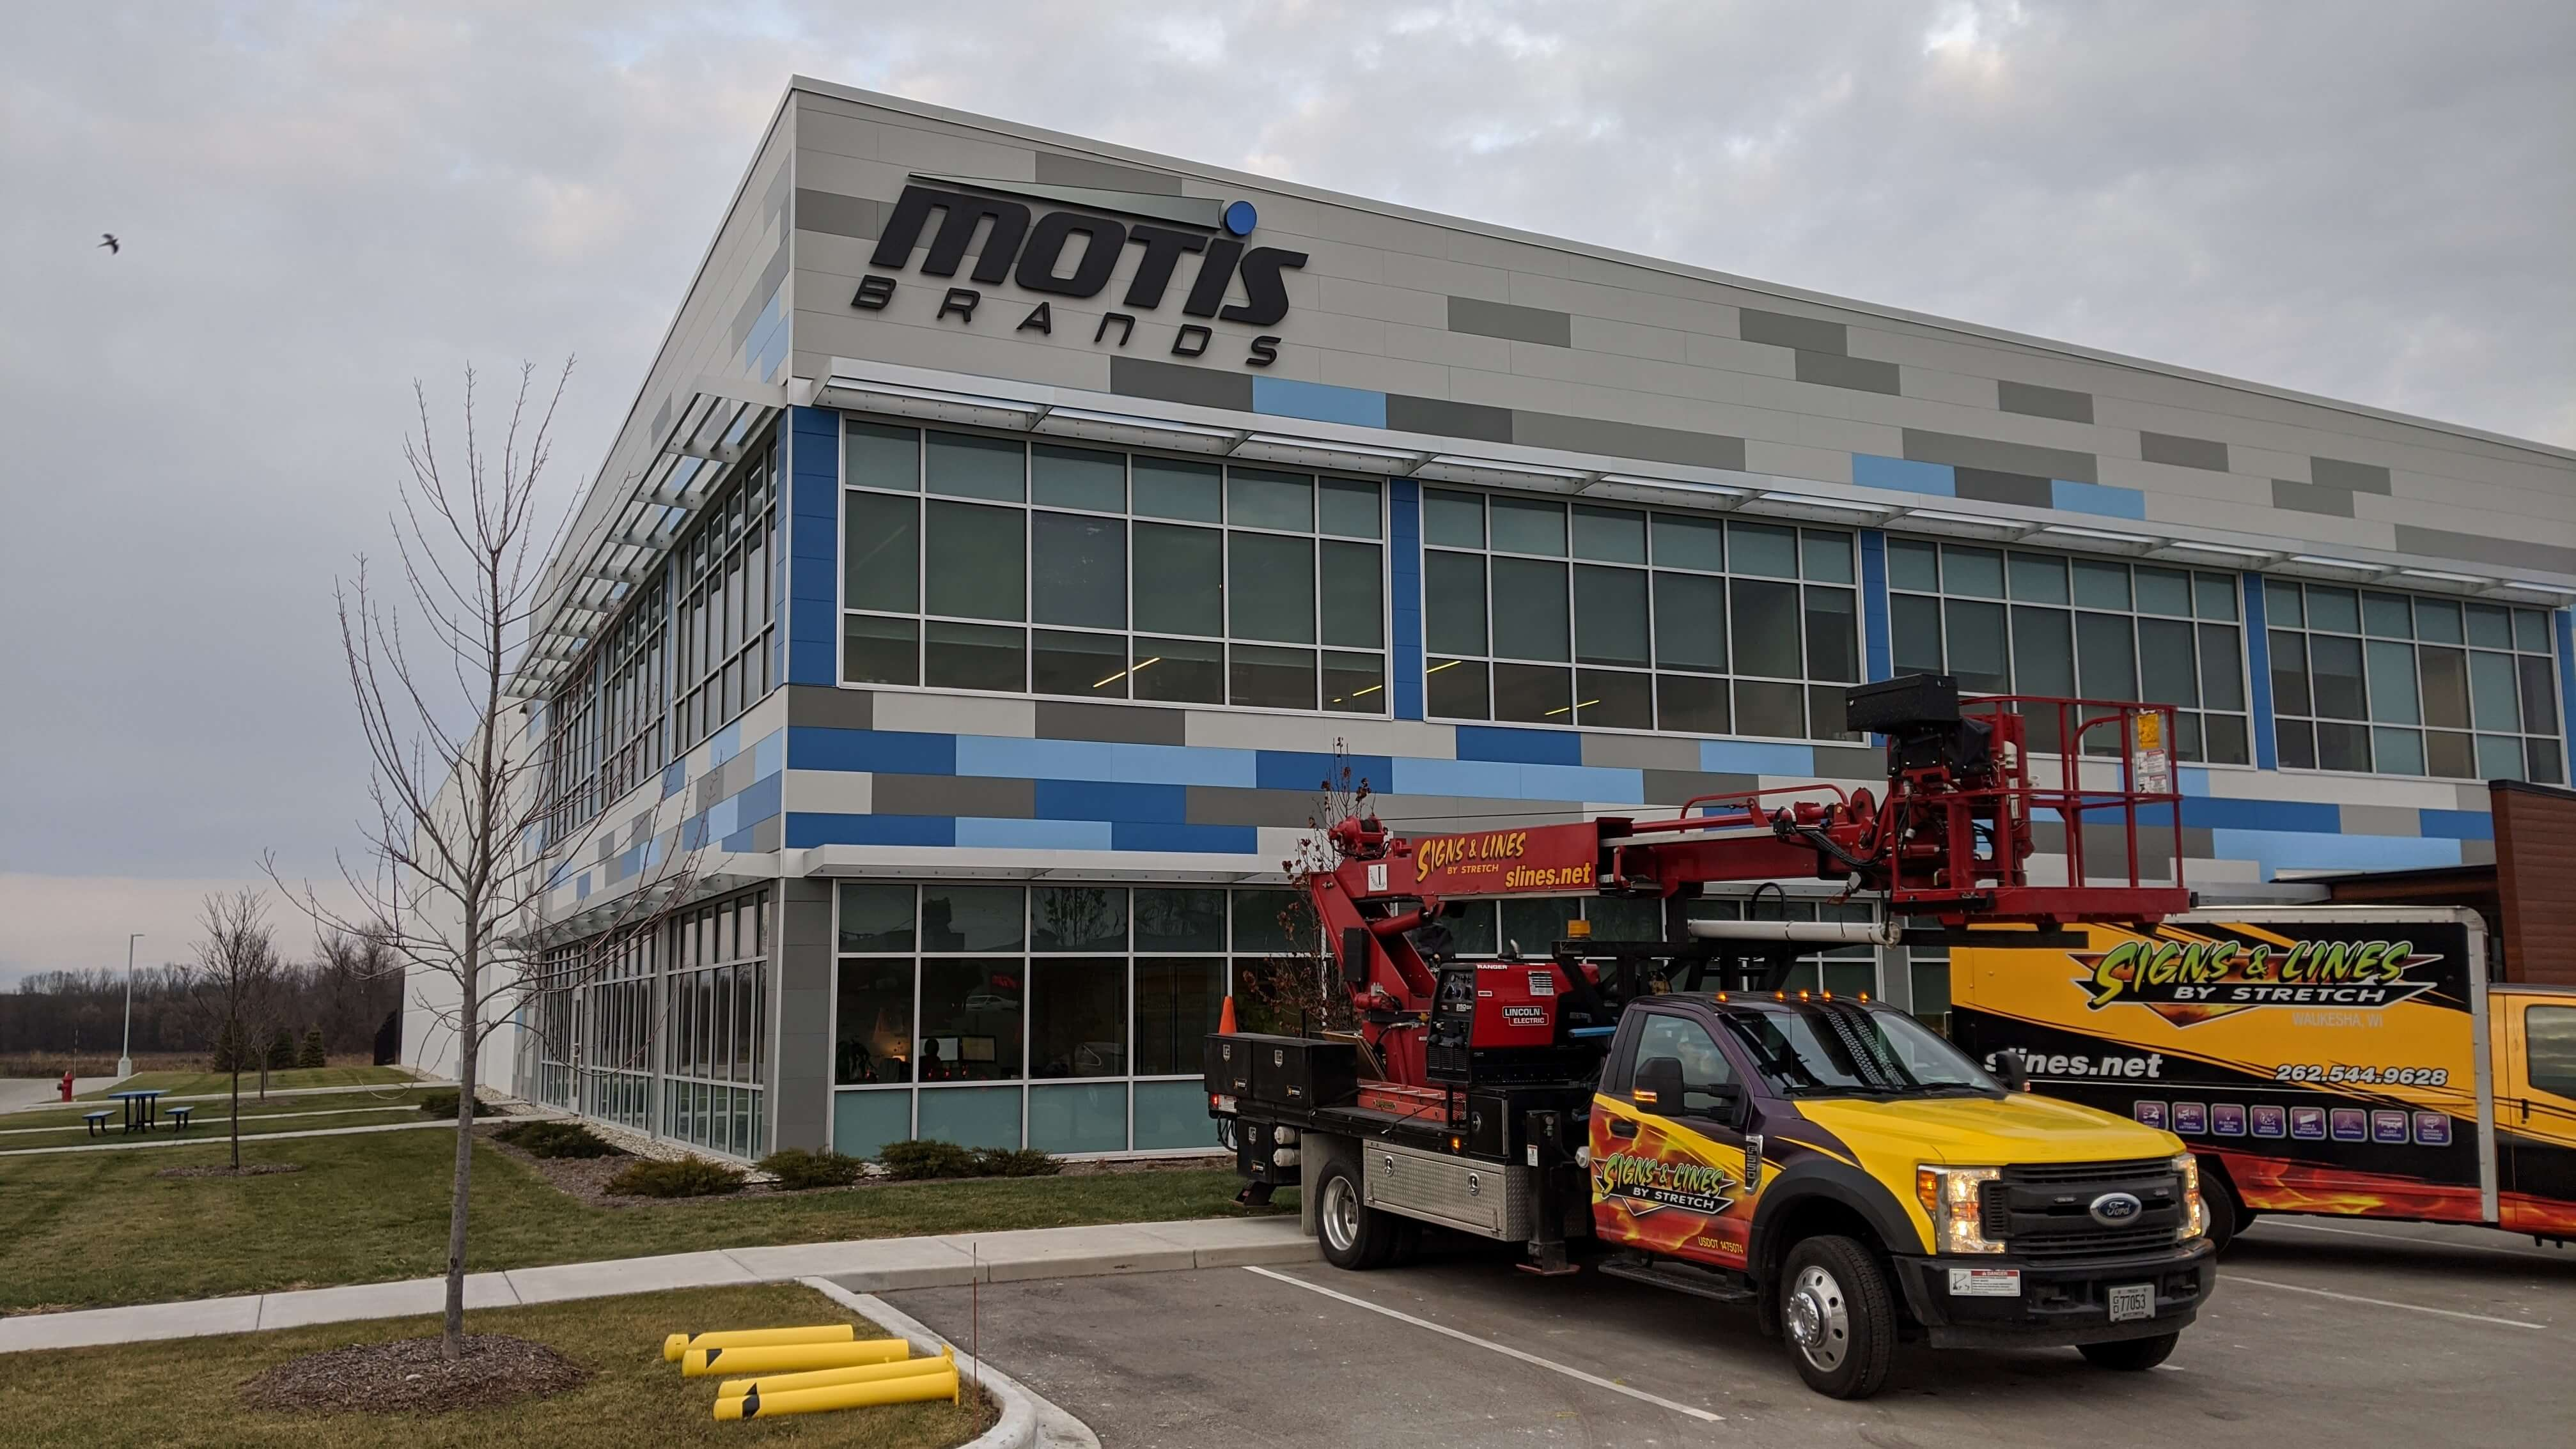 Motis Brands Sign Installation by Signs and Lines with Bucket Truck installing the sign